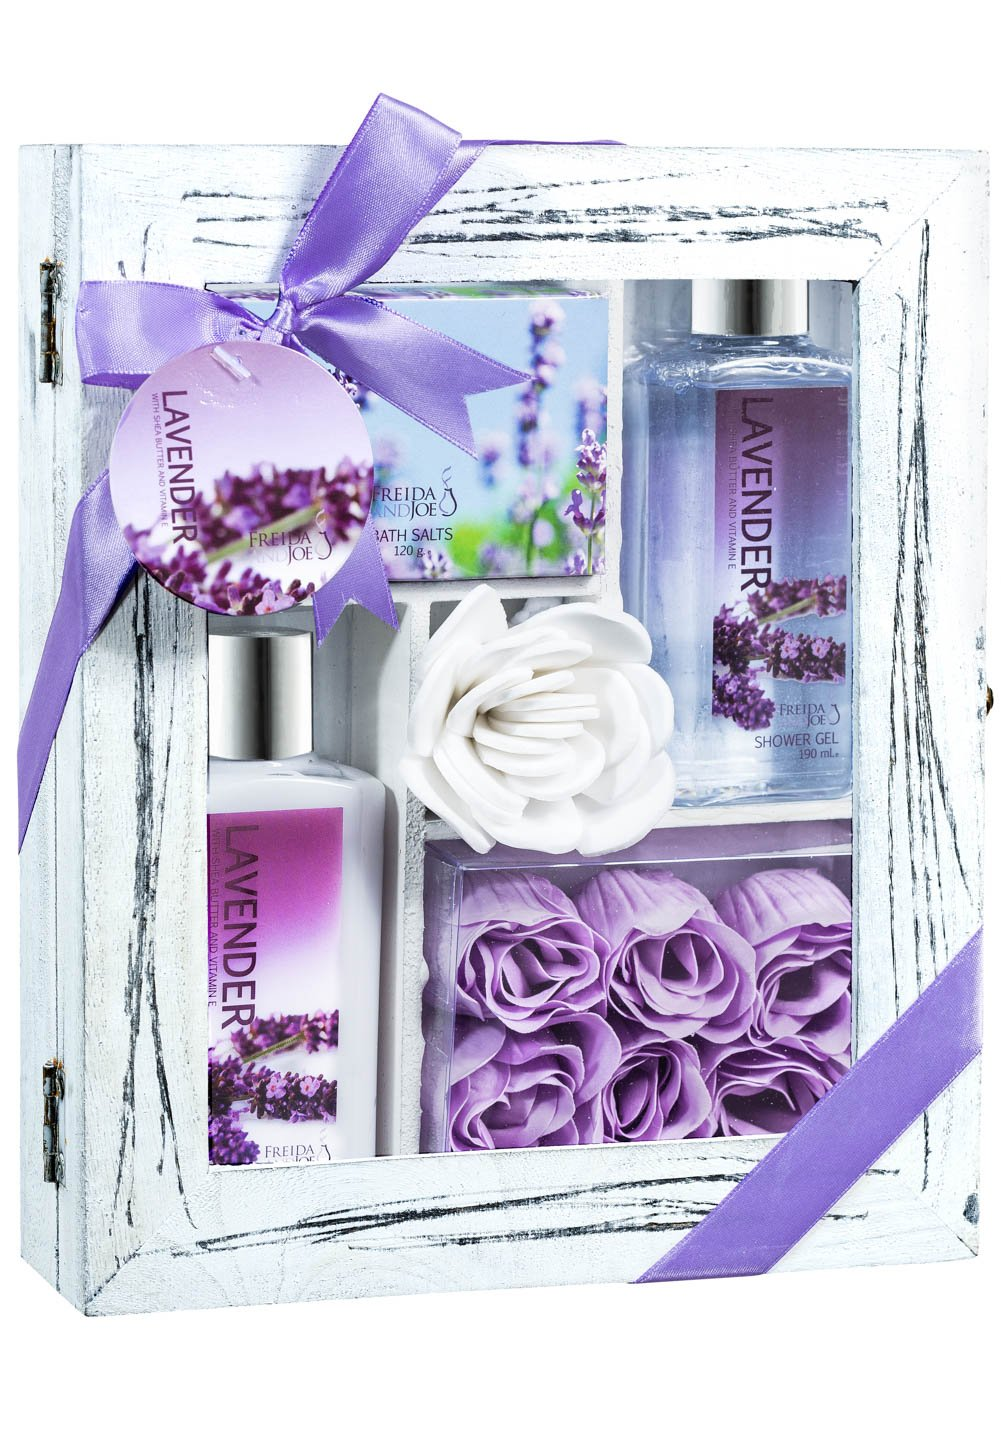 Bath and Body Relaxation Kit Gift Set by Freida and Joe in Lavender Fragrance, with Body Lotion, Shower Gel, Bath Salts, and Rose Soap, in Distressed White Wood Curio, the Best Present for Women